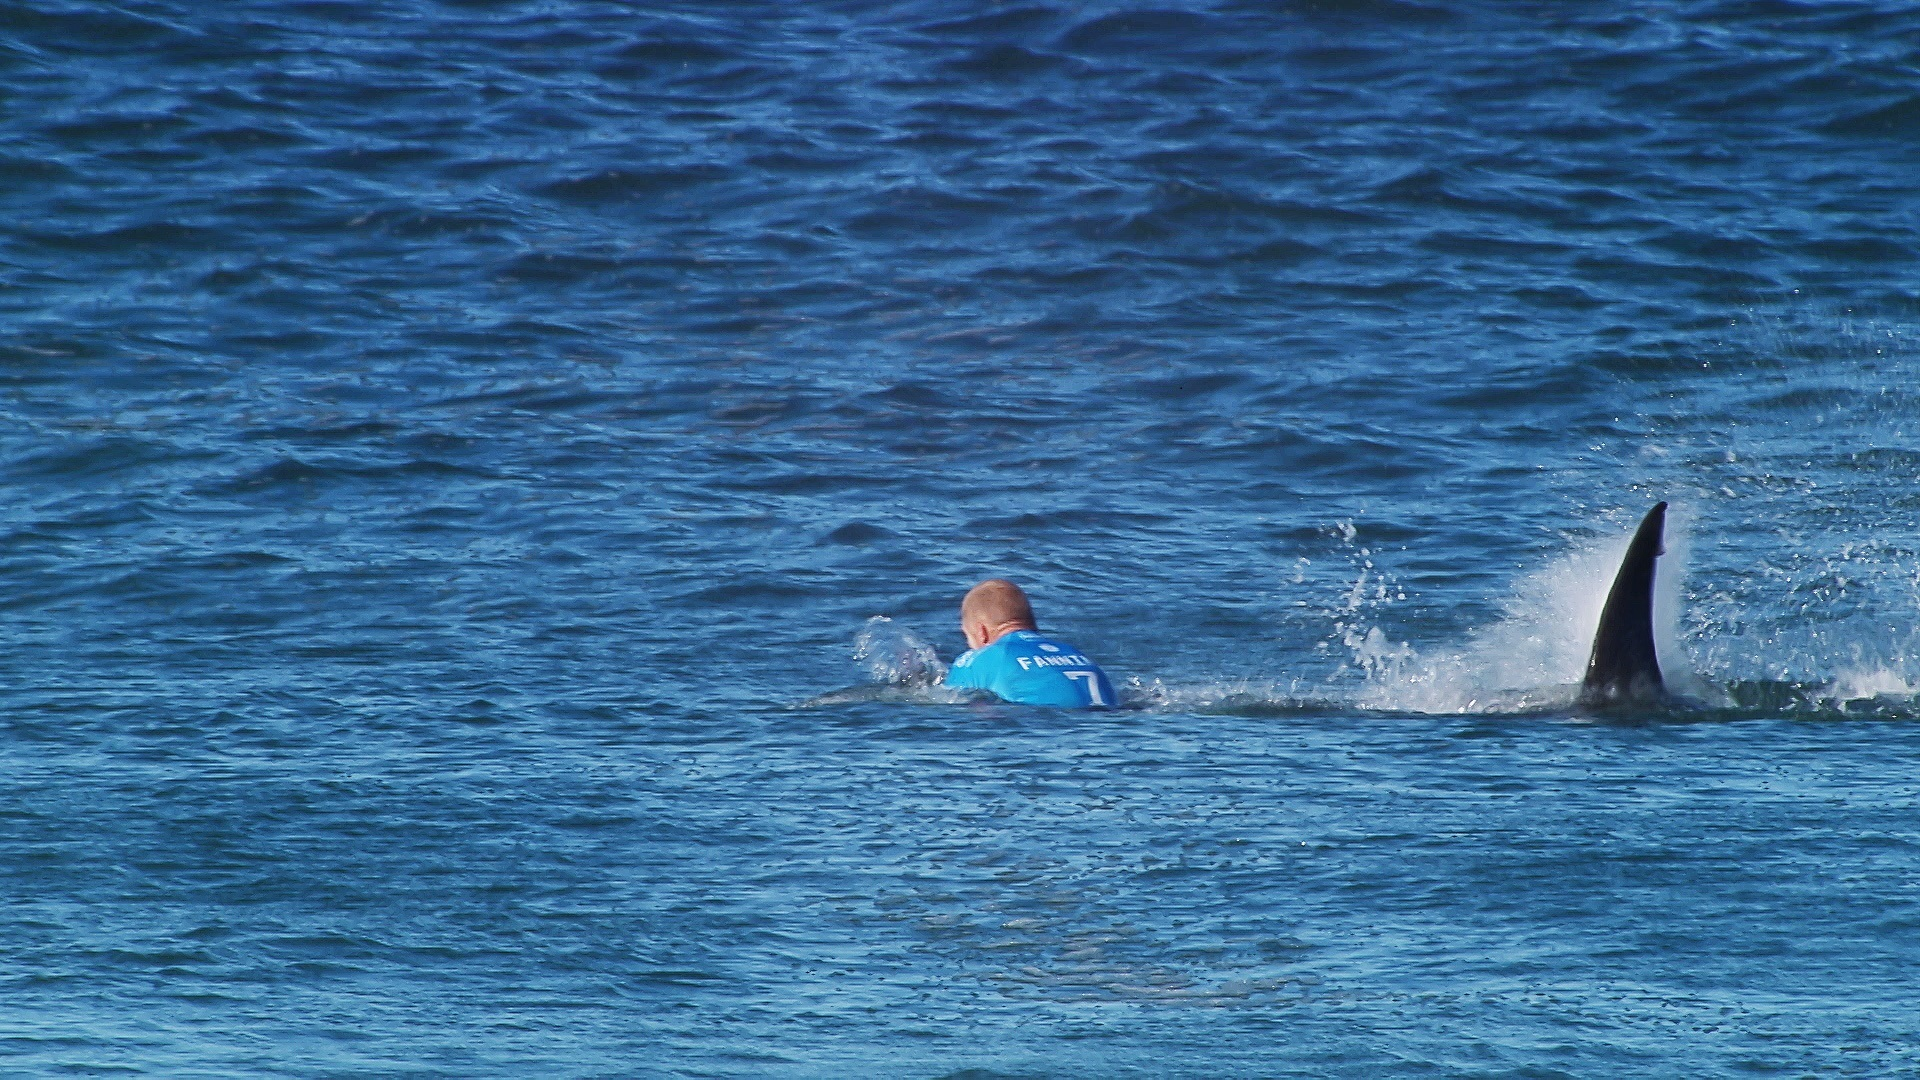 Mick Fanning of Australia is attacked by a shark during the Final of the JBay Open on Sunday July 19, 2015. Fanning was not harmed during the incident.